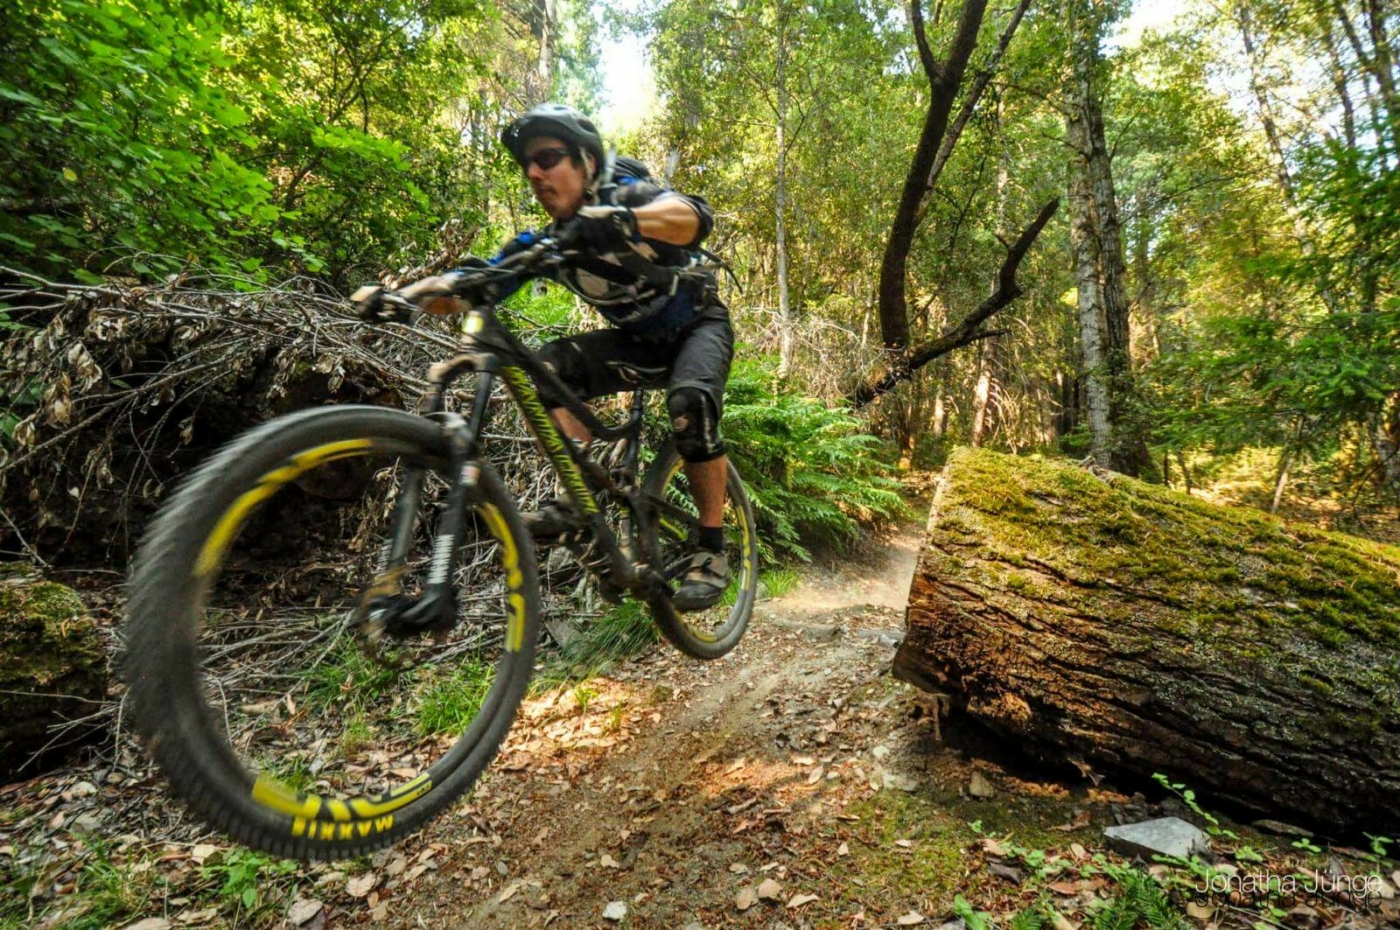 Man on mountain bike riding quickly through a trail in the forest